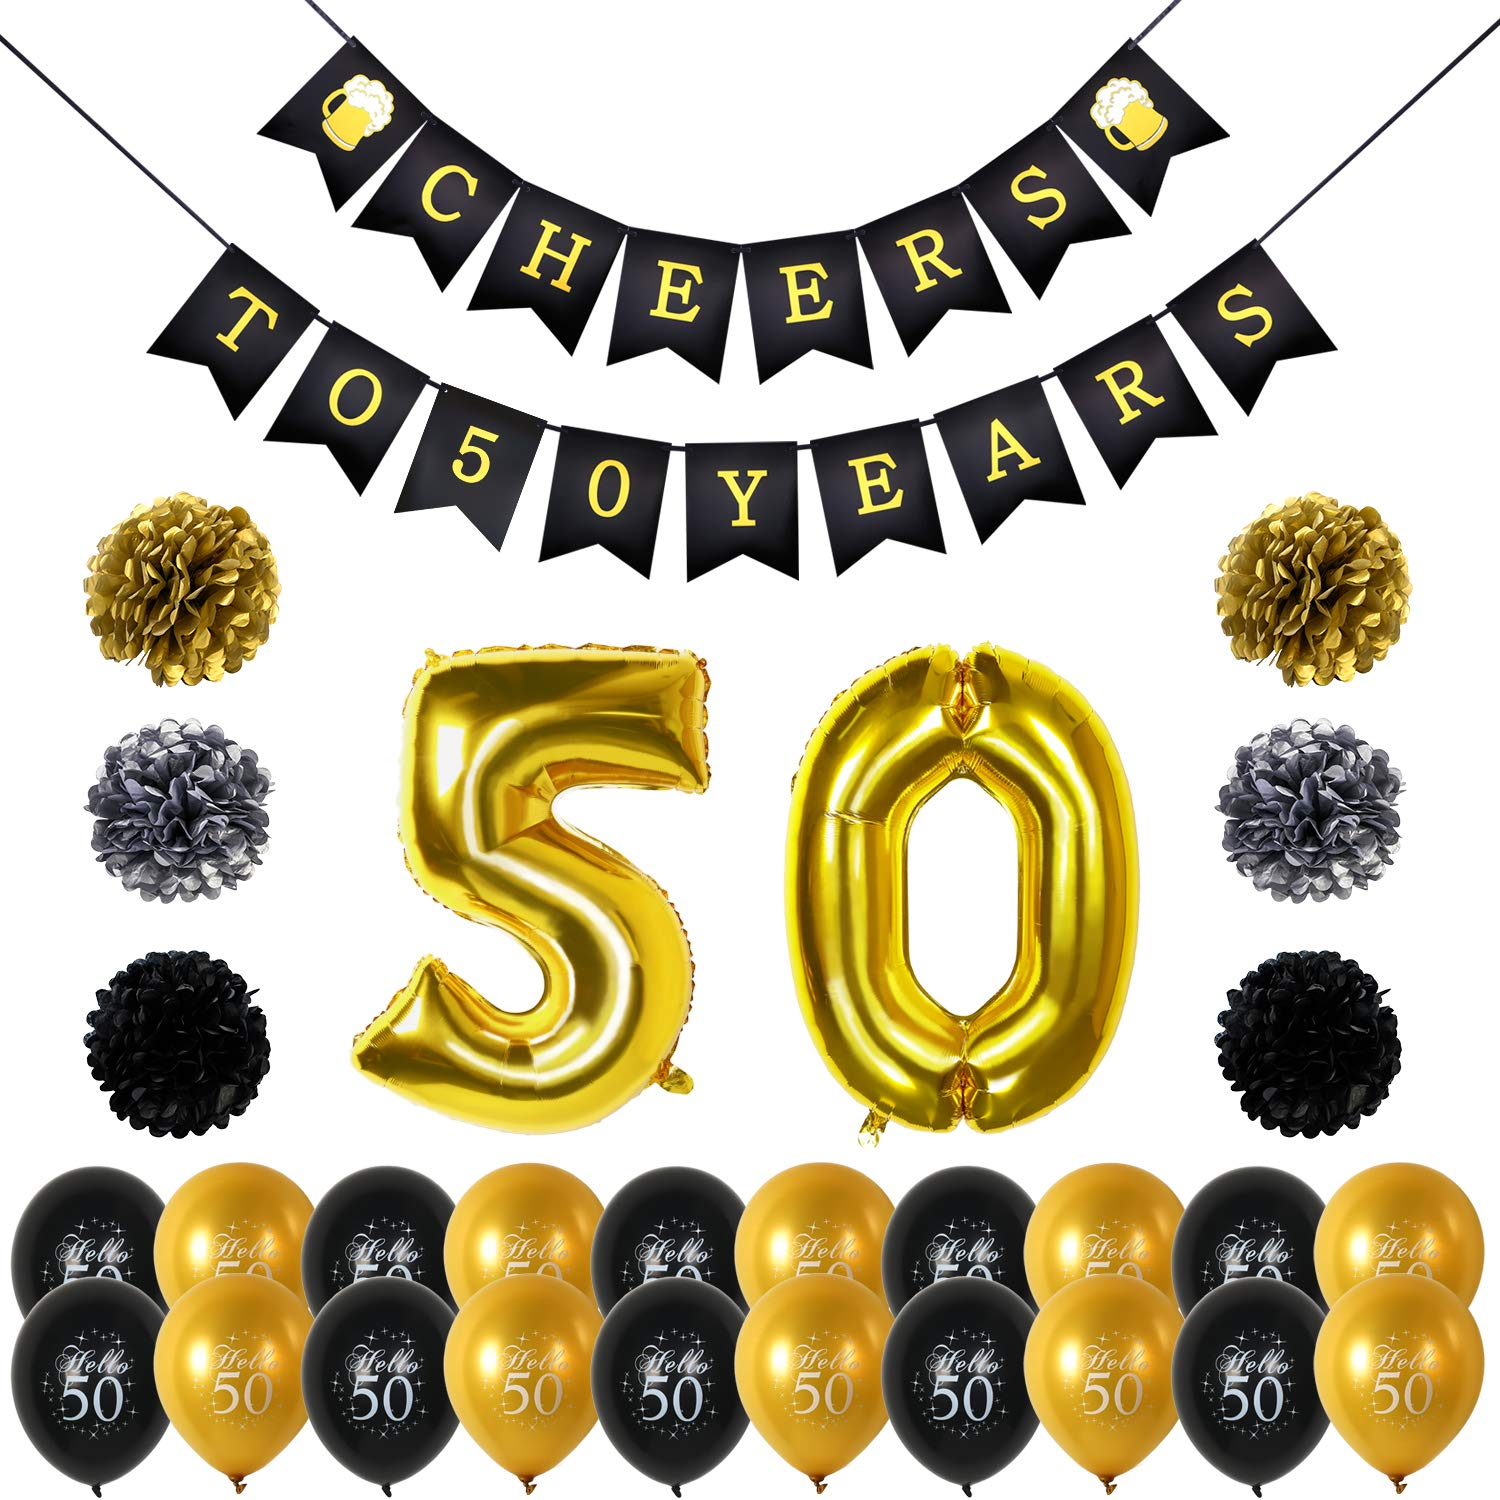 50th Birthday Party Decorations Konsait Cheers To Banner Number 50 Foil Balloons Large 20pcs Black Gold Latex Hello Balloon